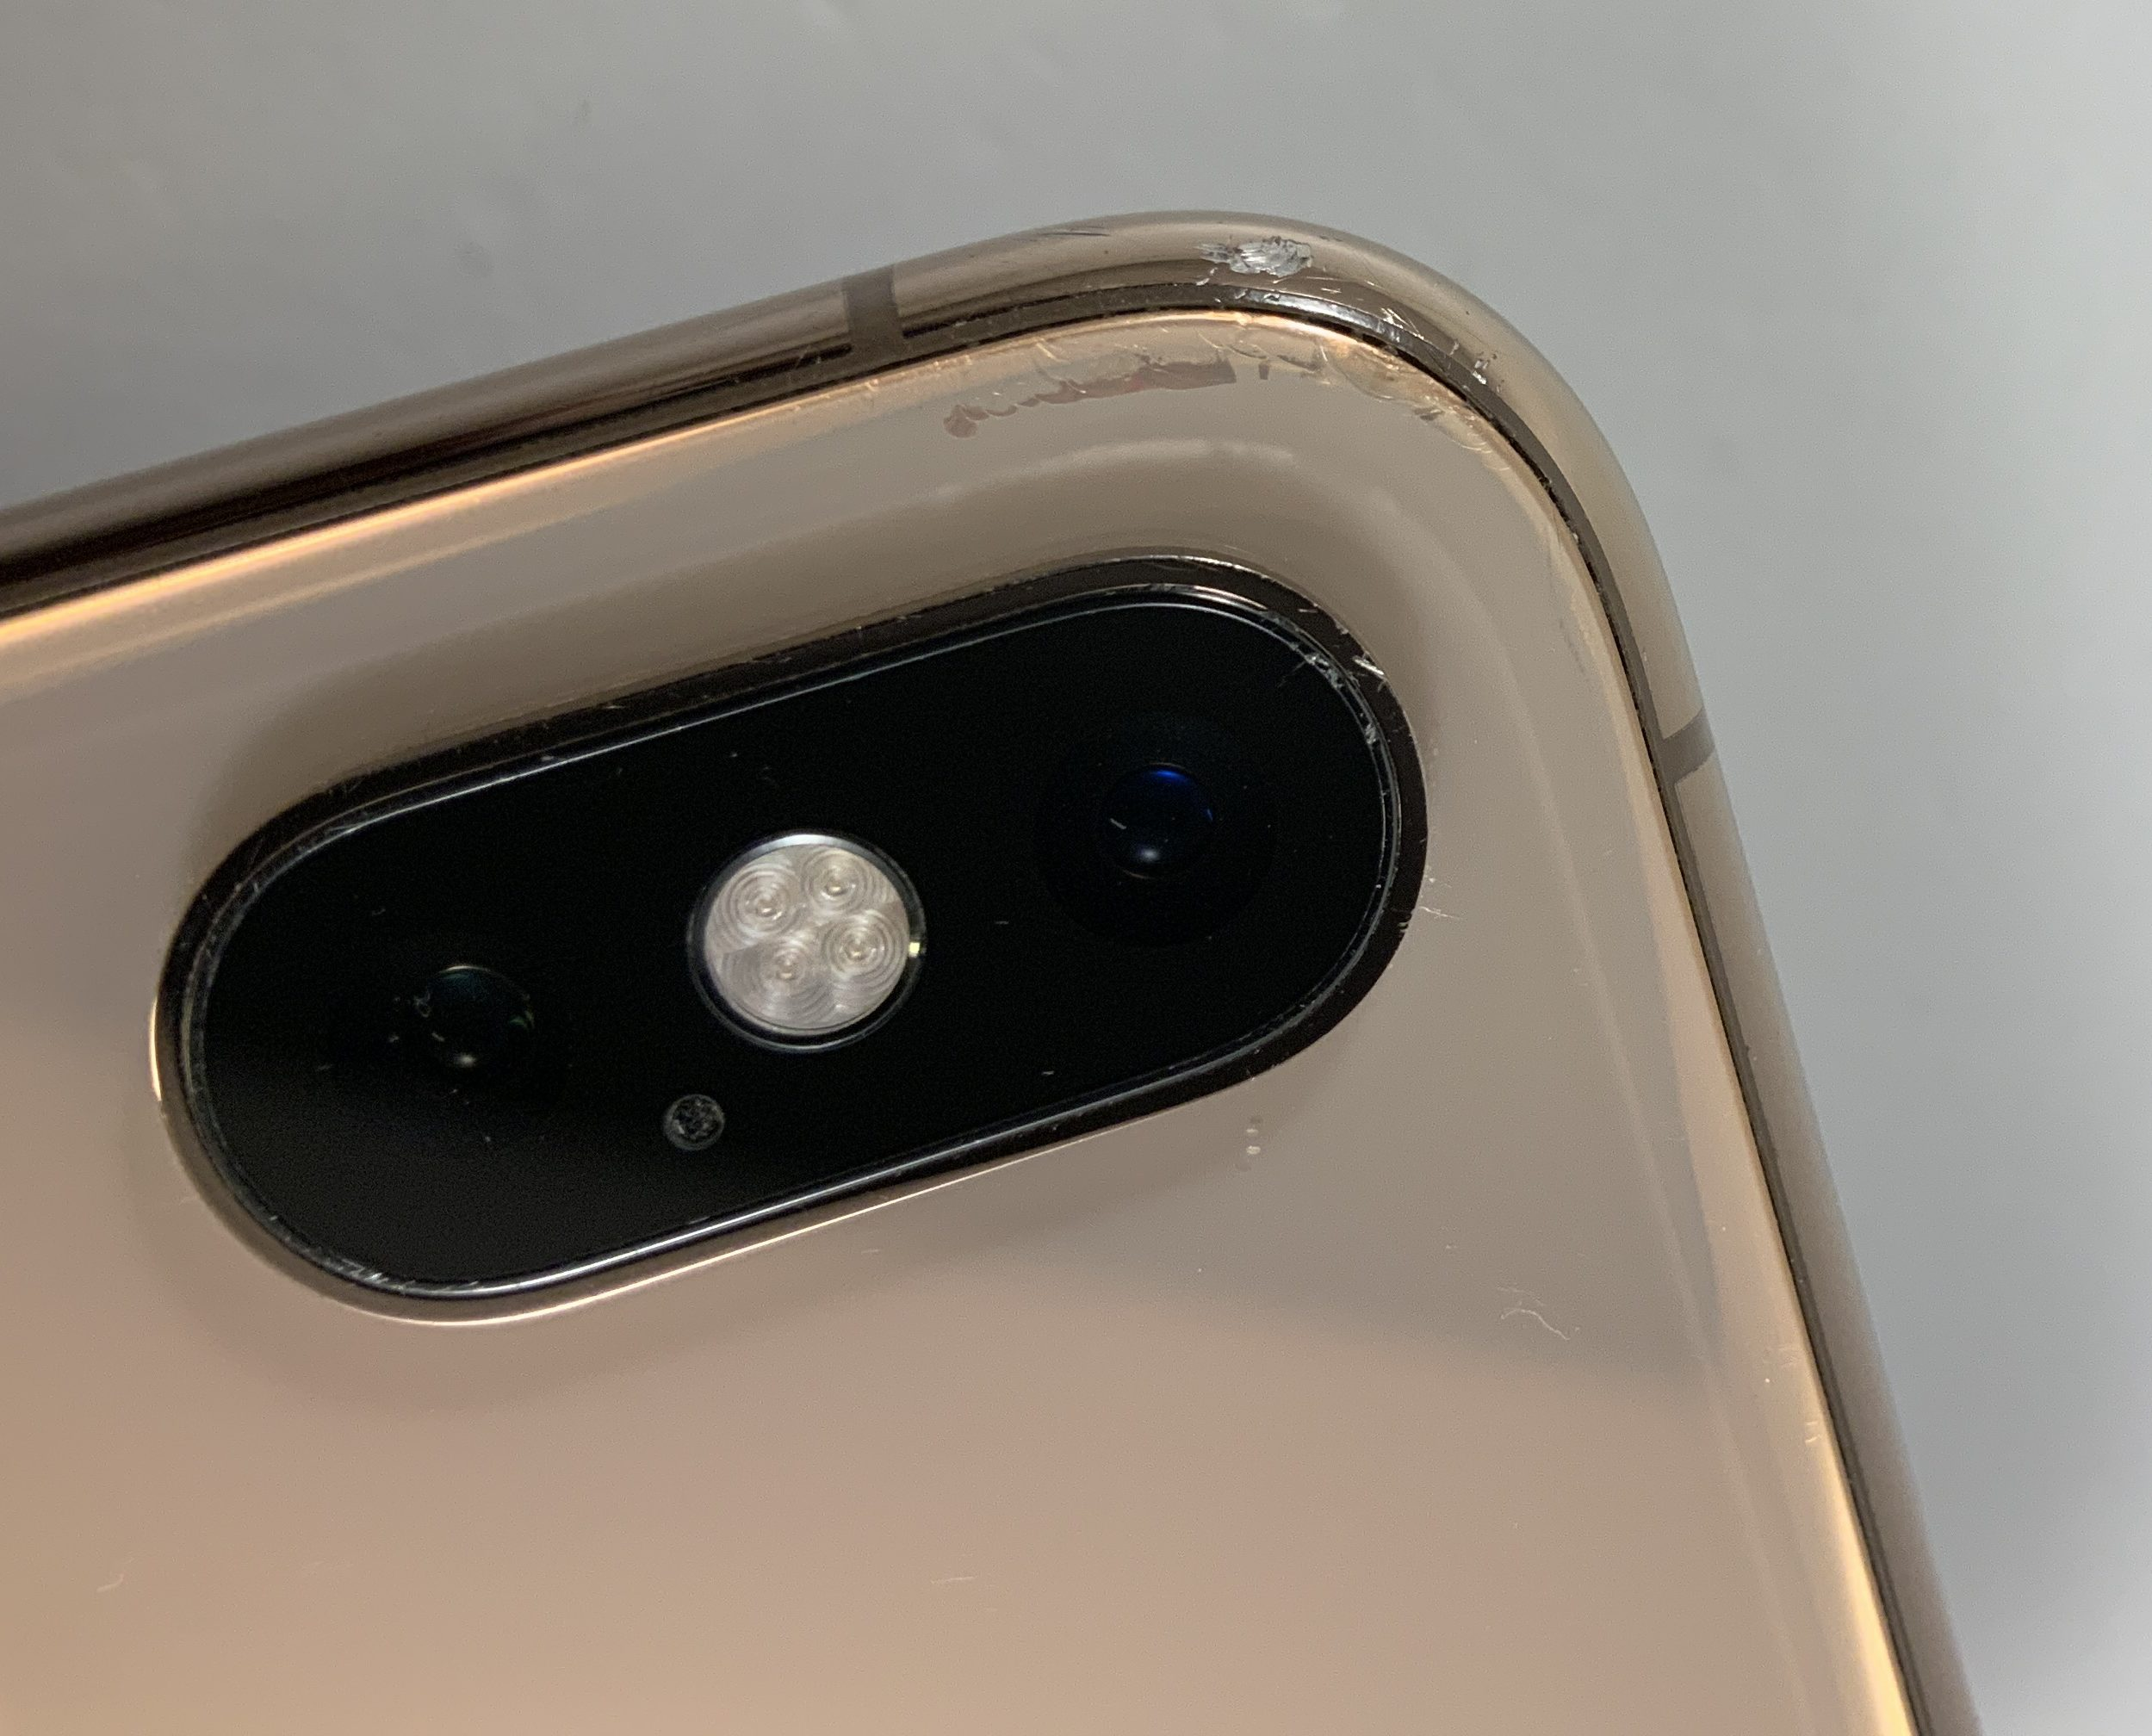 iPhone XS Max 64GB, 64GB, Gold, obraz 6